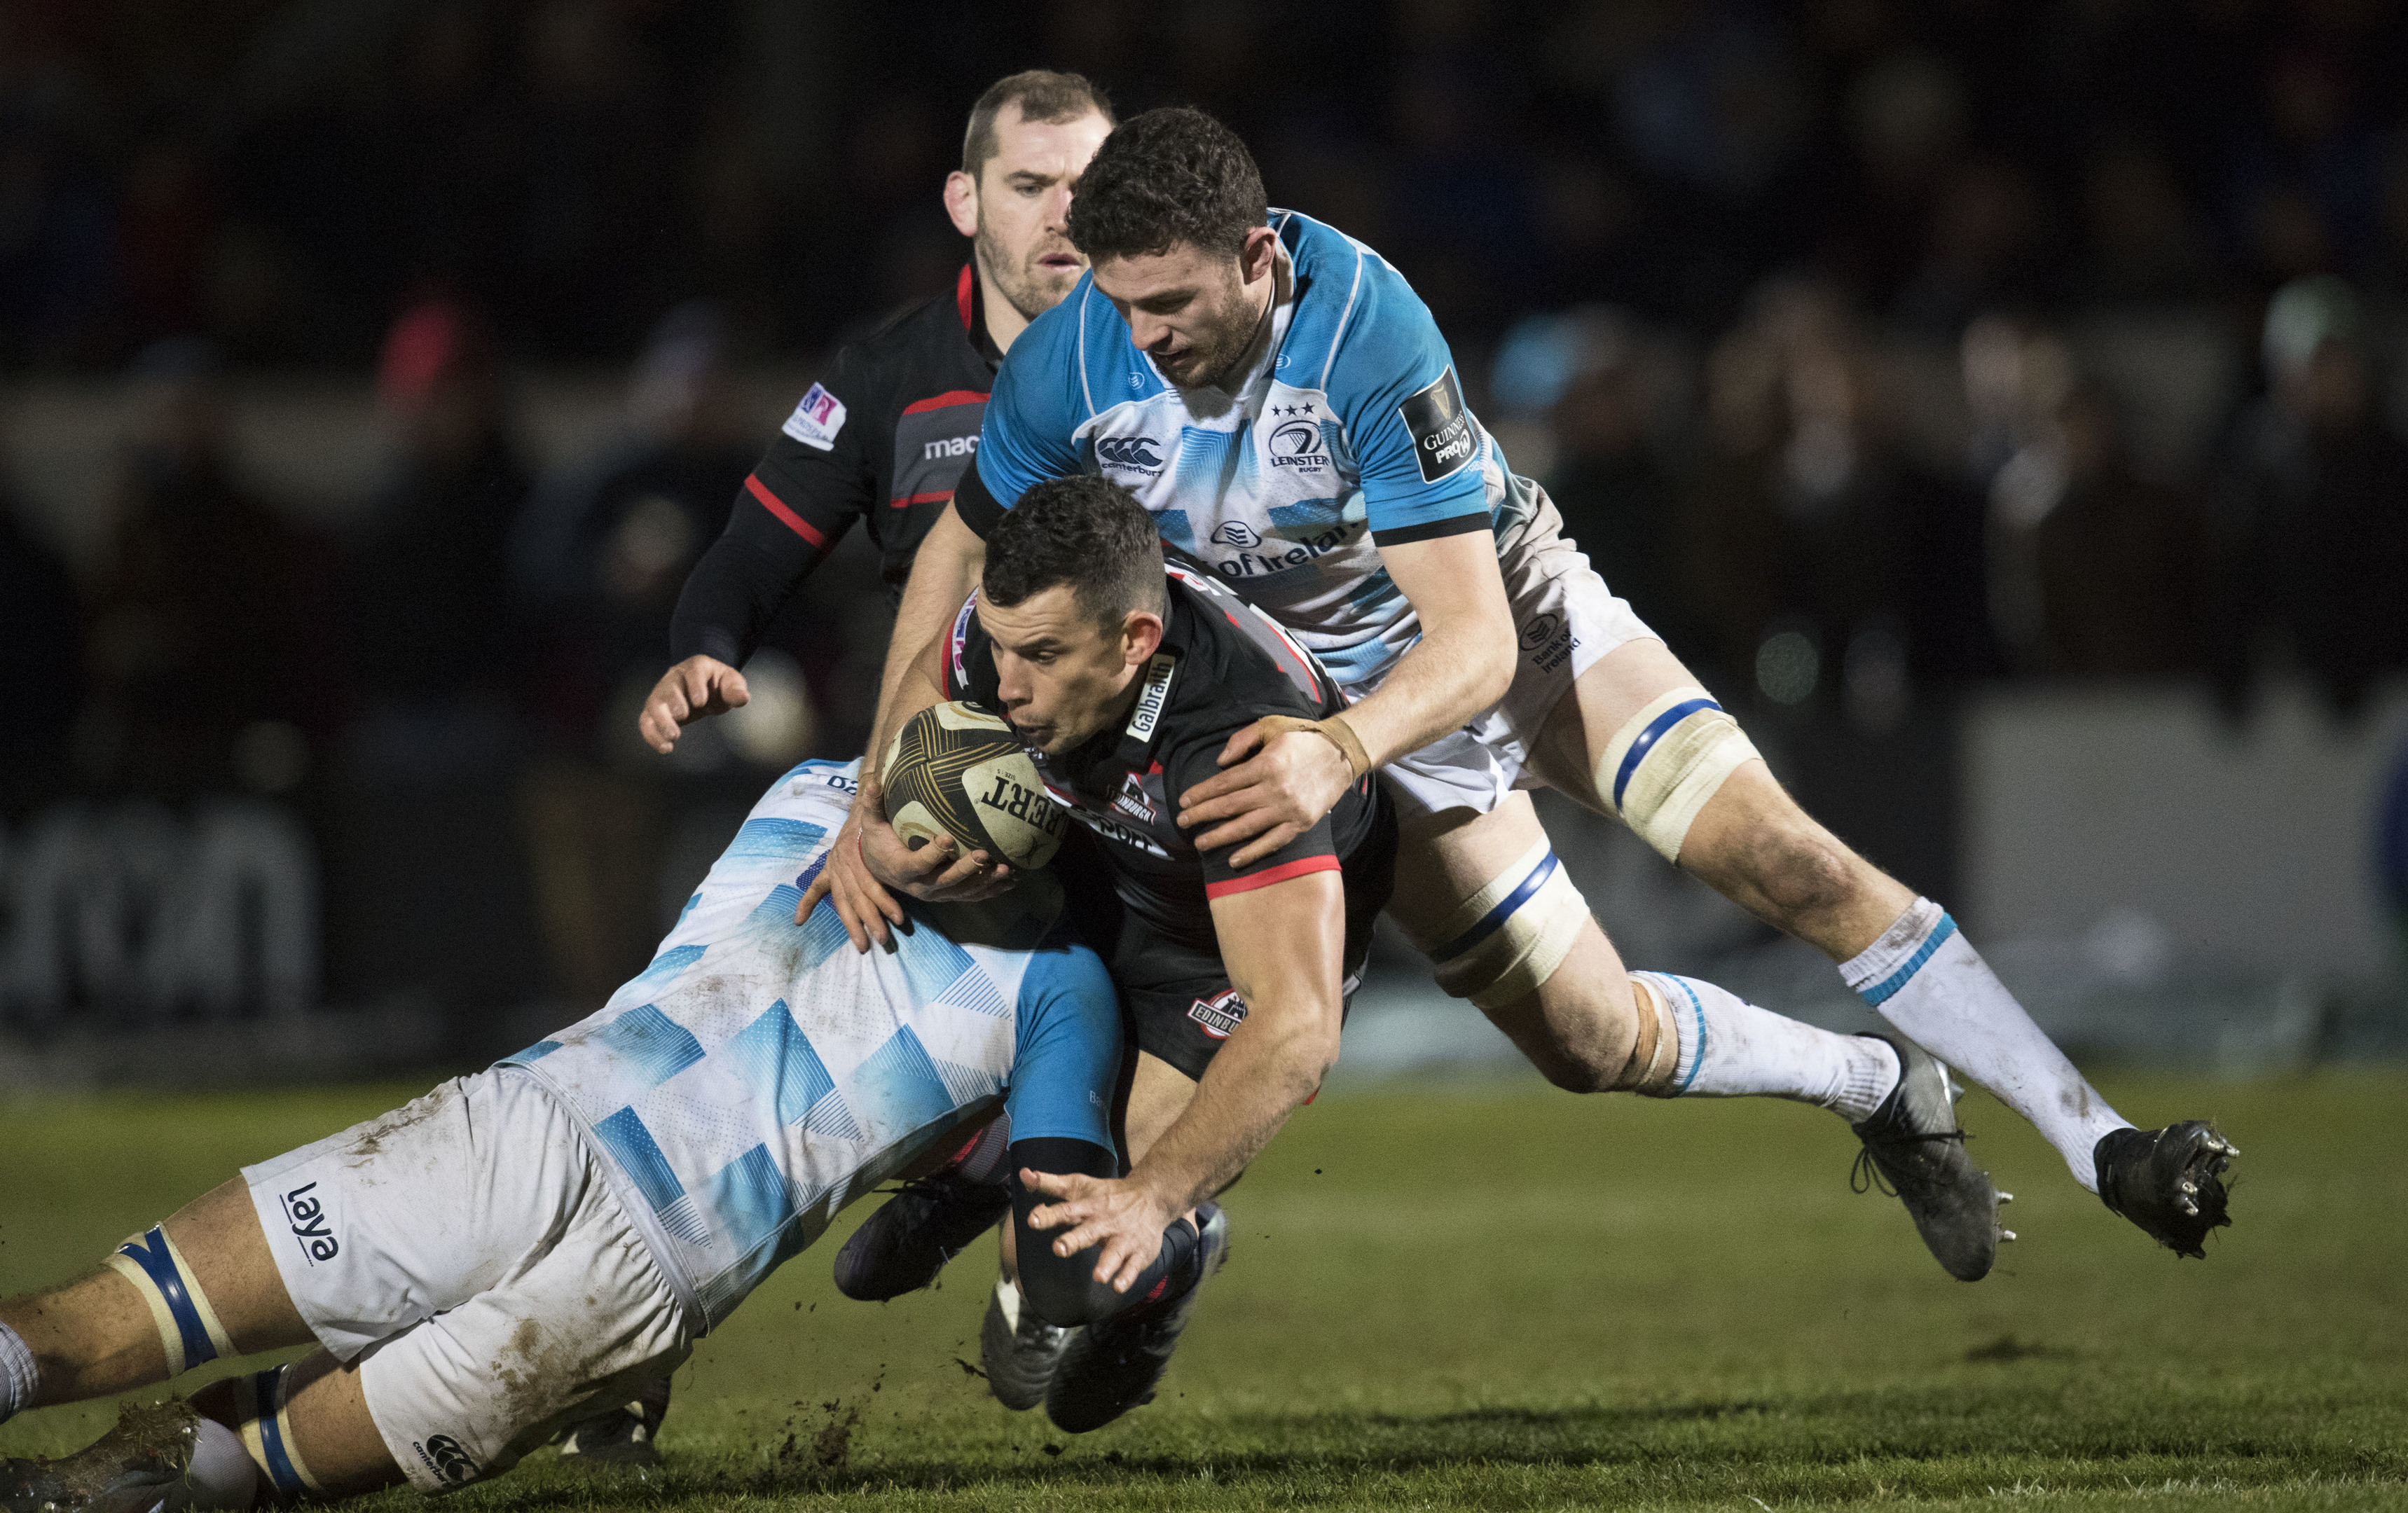 John Hardie will make his first start after his disciplinary suspension for Edinburgh at Ulster.